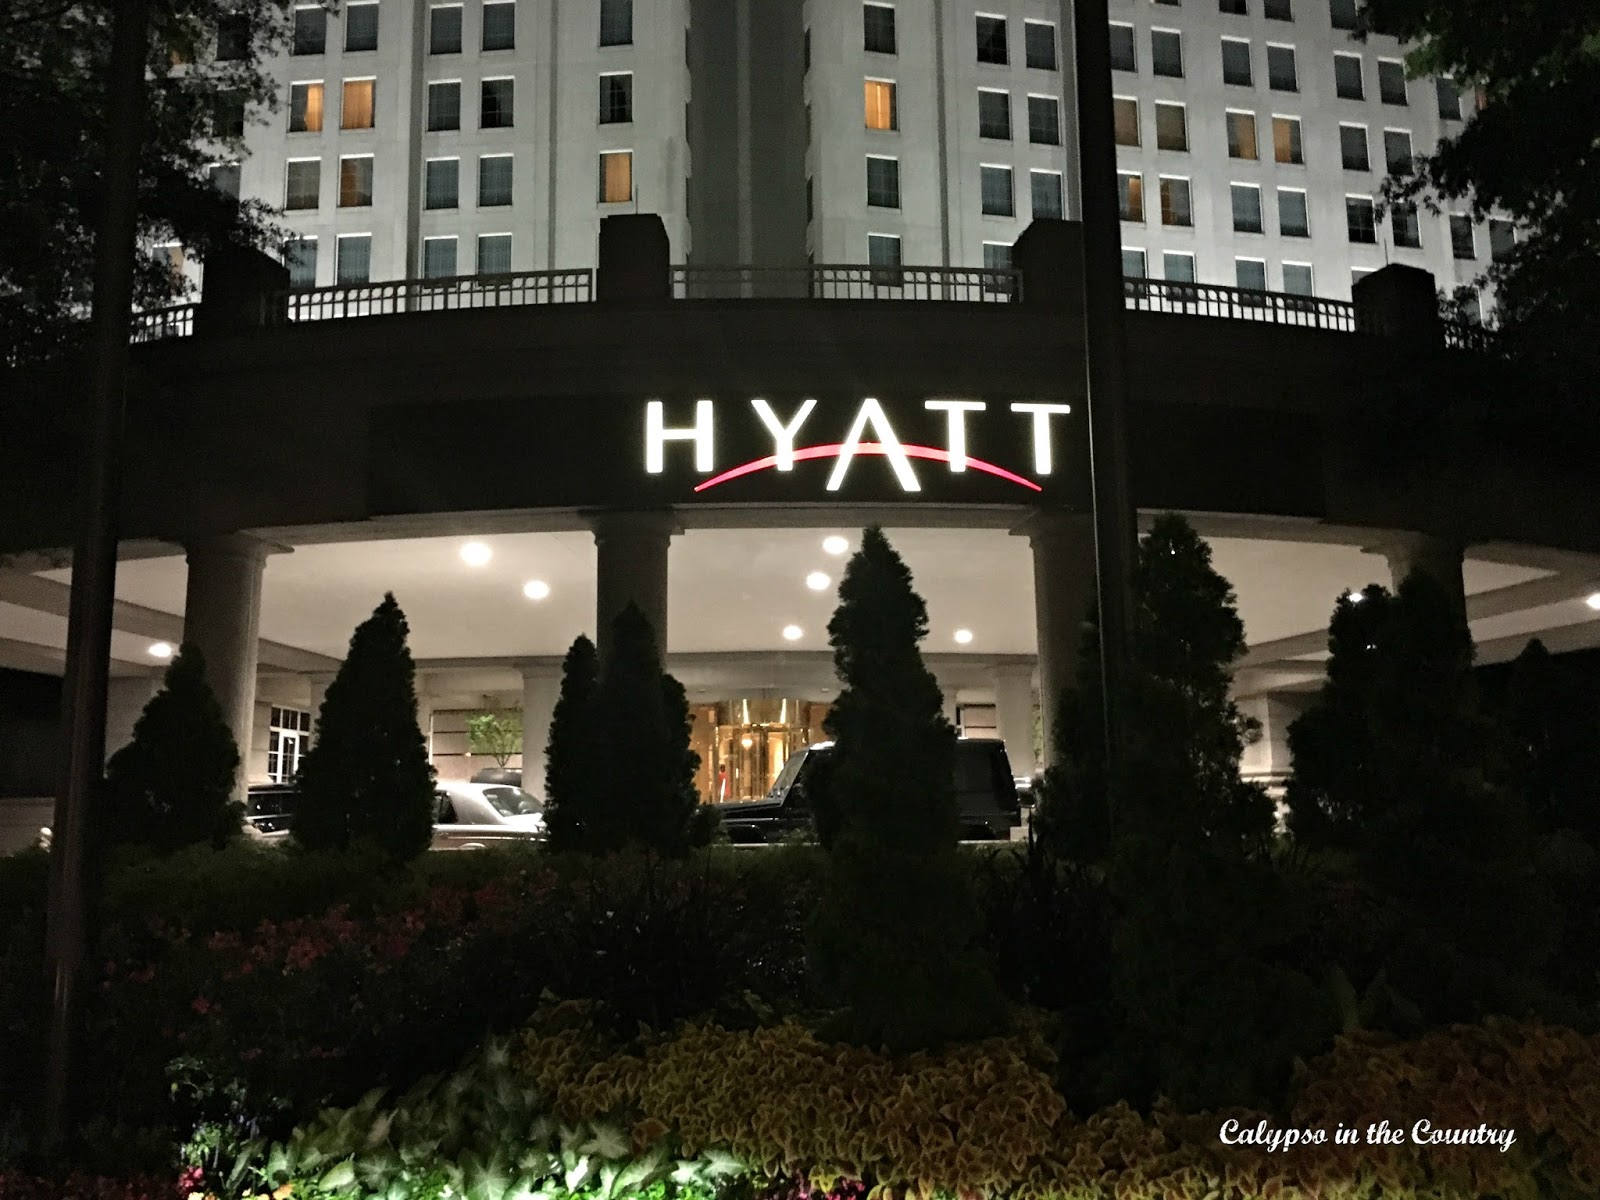 Buckhead Hyatt in Atlanta, GA - the location for the Haven Conference for DIY and design bloggers